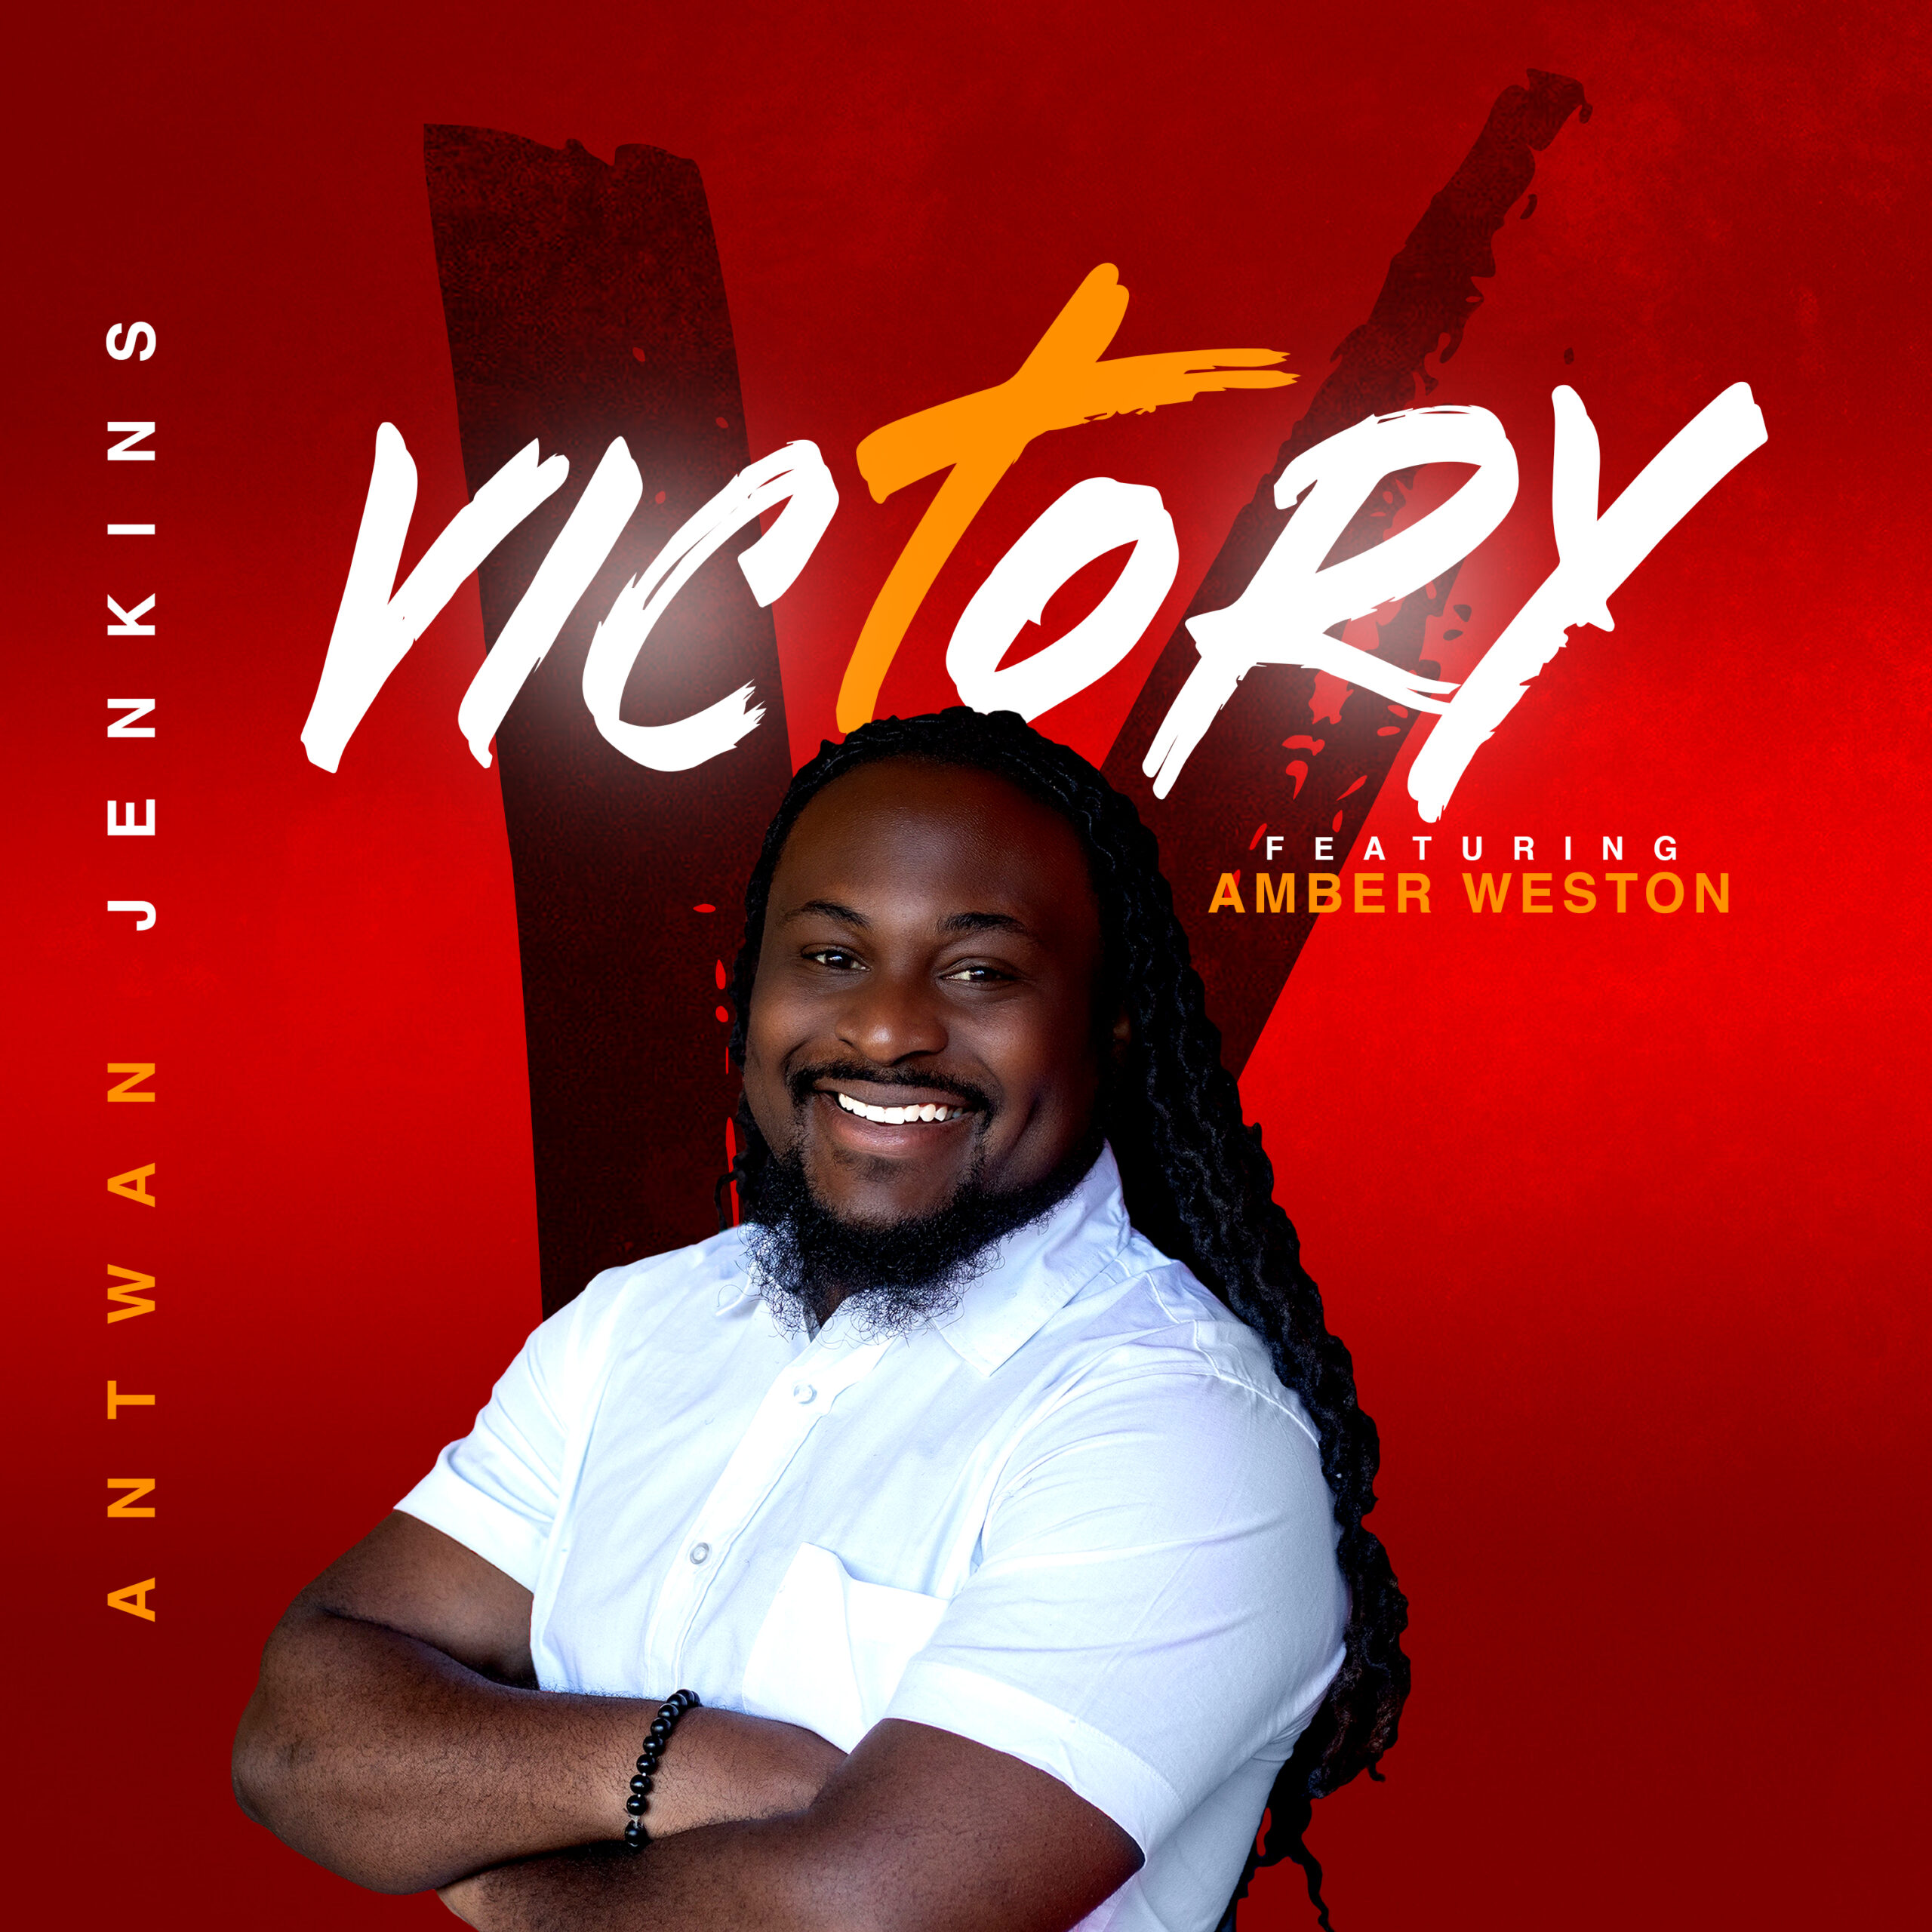 Photo of Victory by Antwan Jenkins